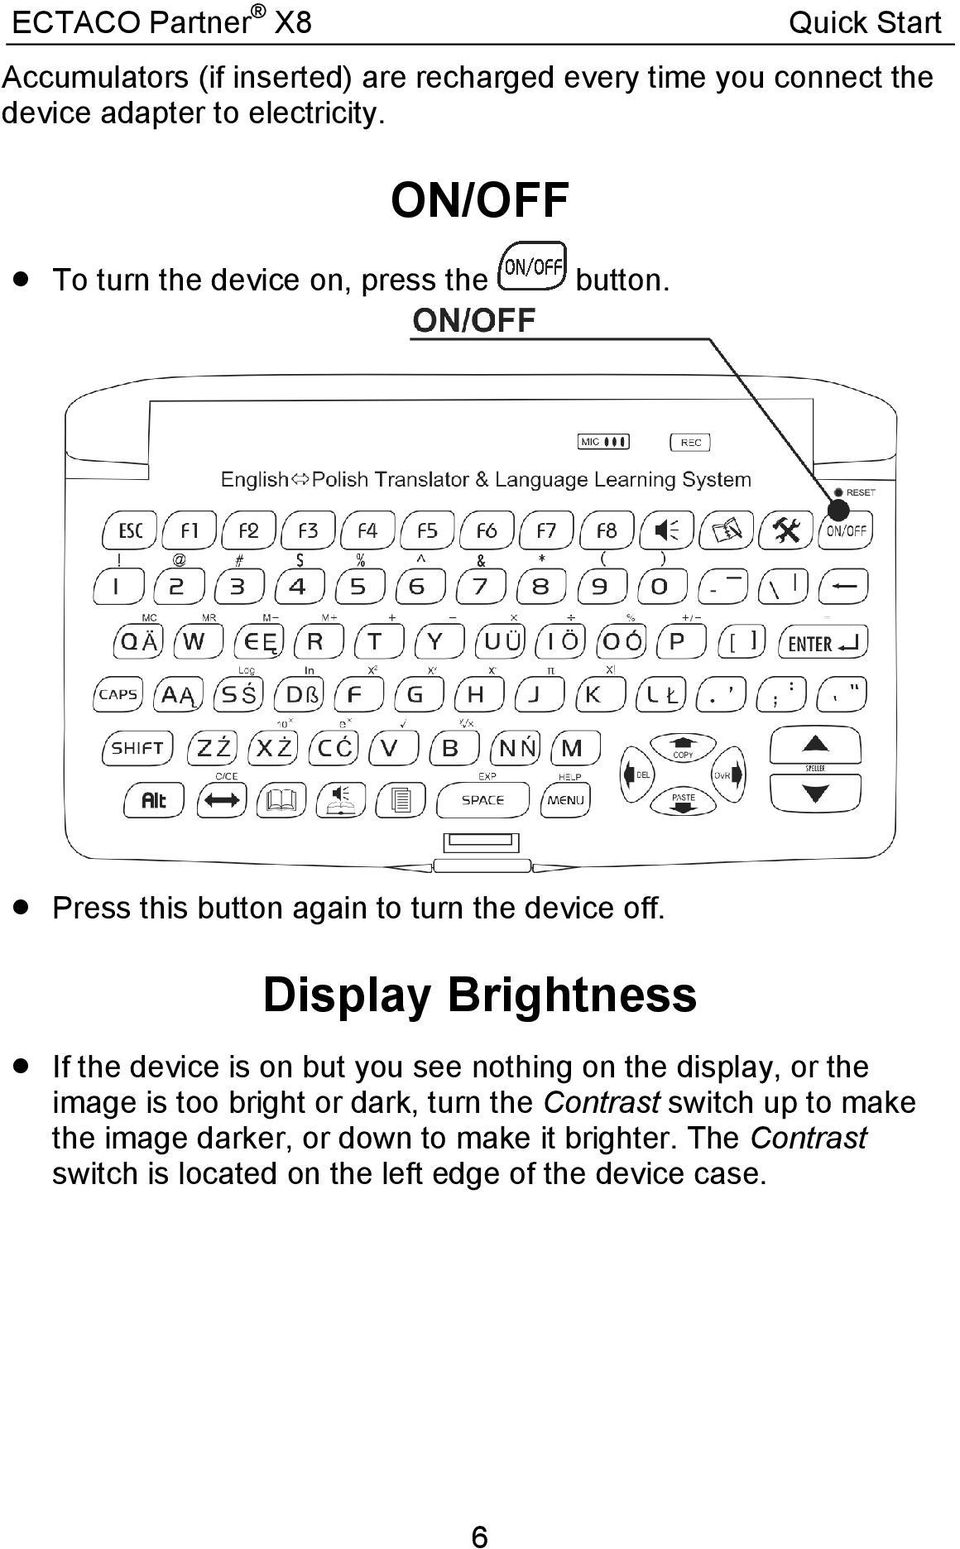 Display Brightness If the device is on but you see nothing on the display, or the image is too bright or dark, turn